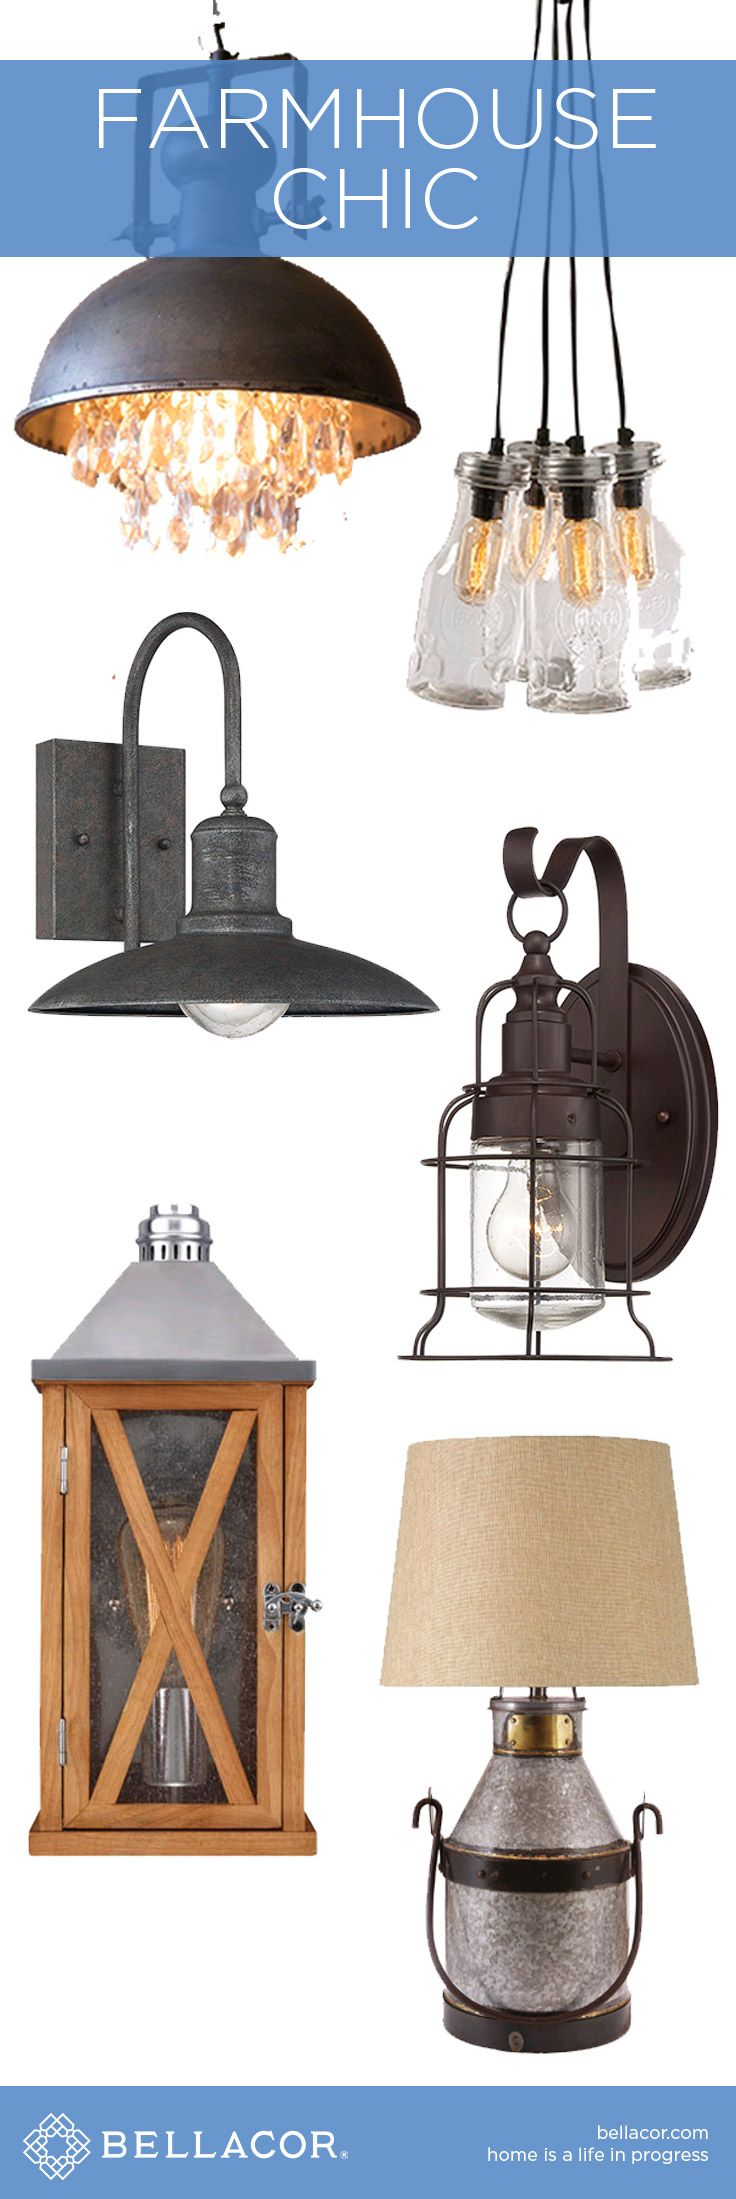 Shop Rustic Farmhouse Chic Lighting & Decor and Save Up to 20% at http://www.bellacor.com/